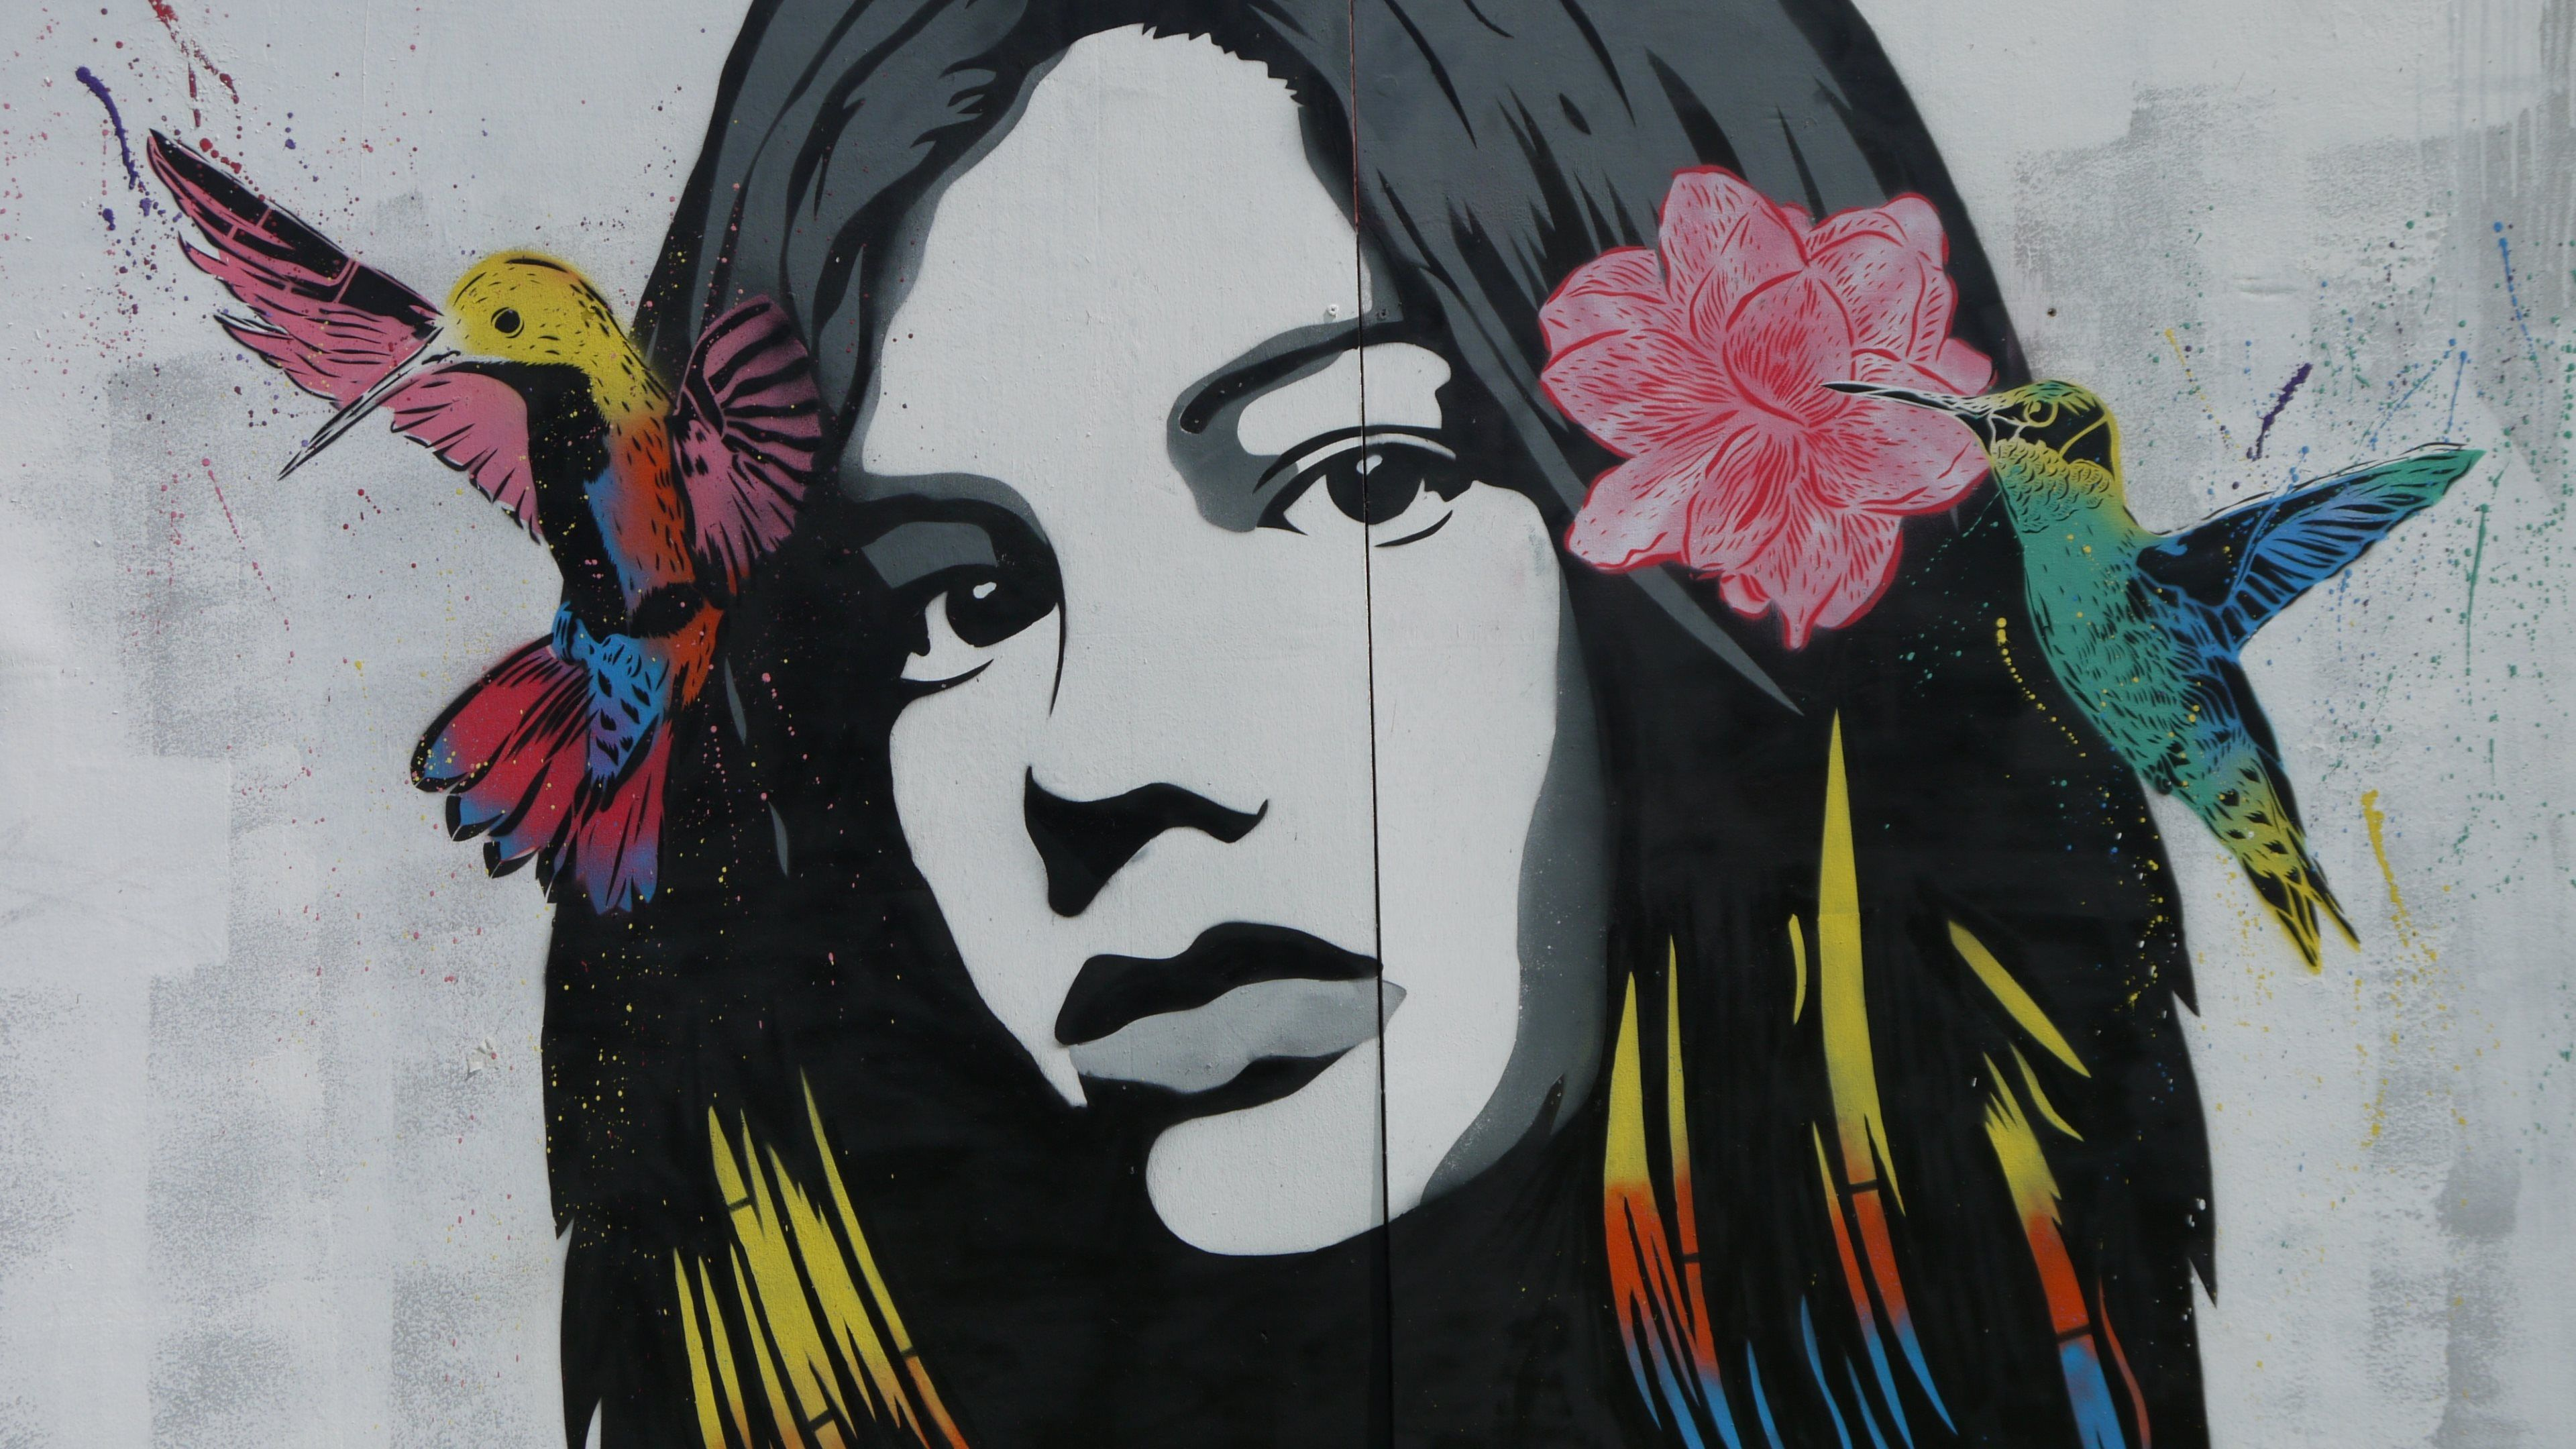 Pin By Mona Mae On Backgrounds: Pin By Return To Love Return To Love On Street Art